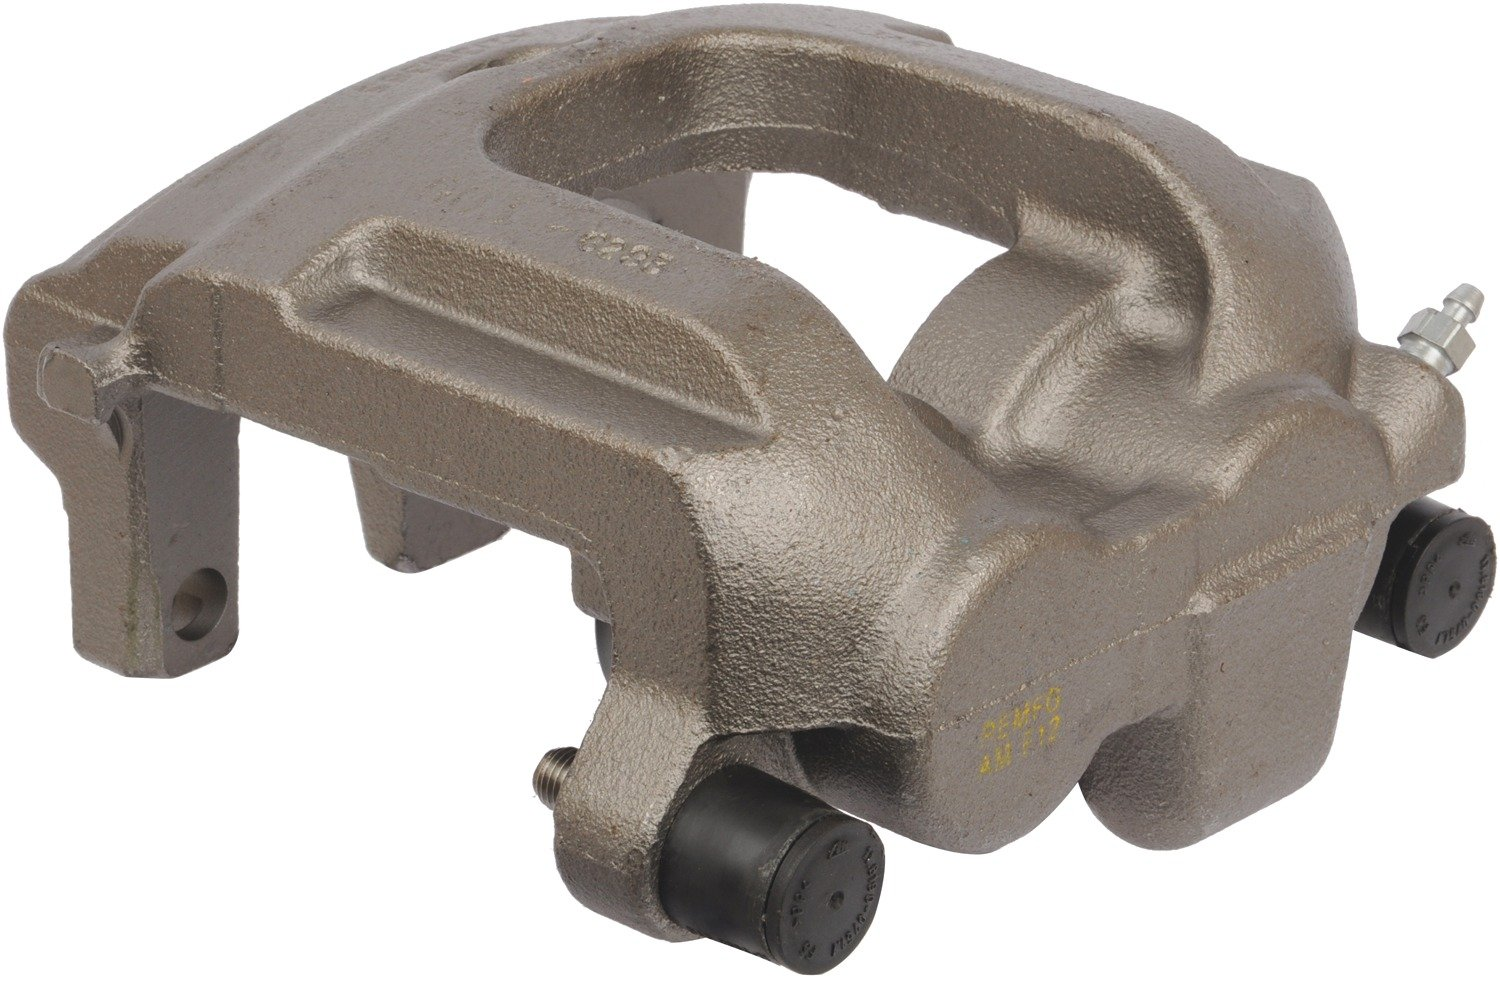 Cardone 19-3867 Remanufactured Import Friction Ready Brake Caliper A1 Cardone Unloaded